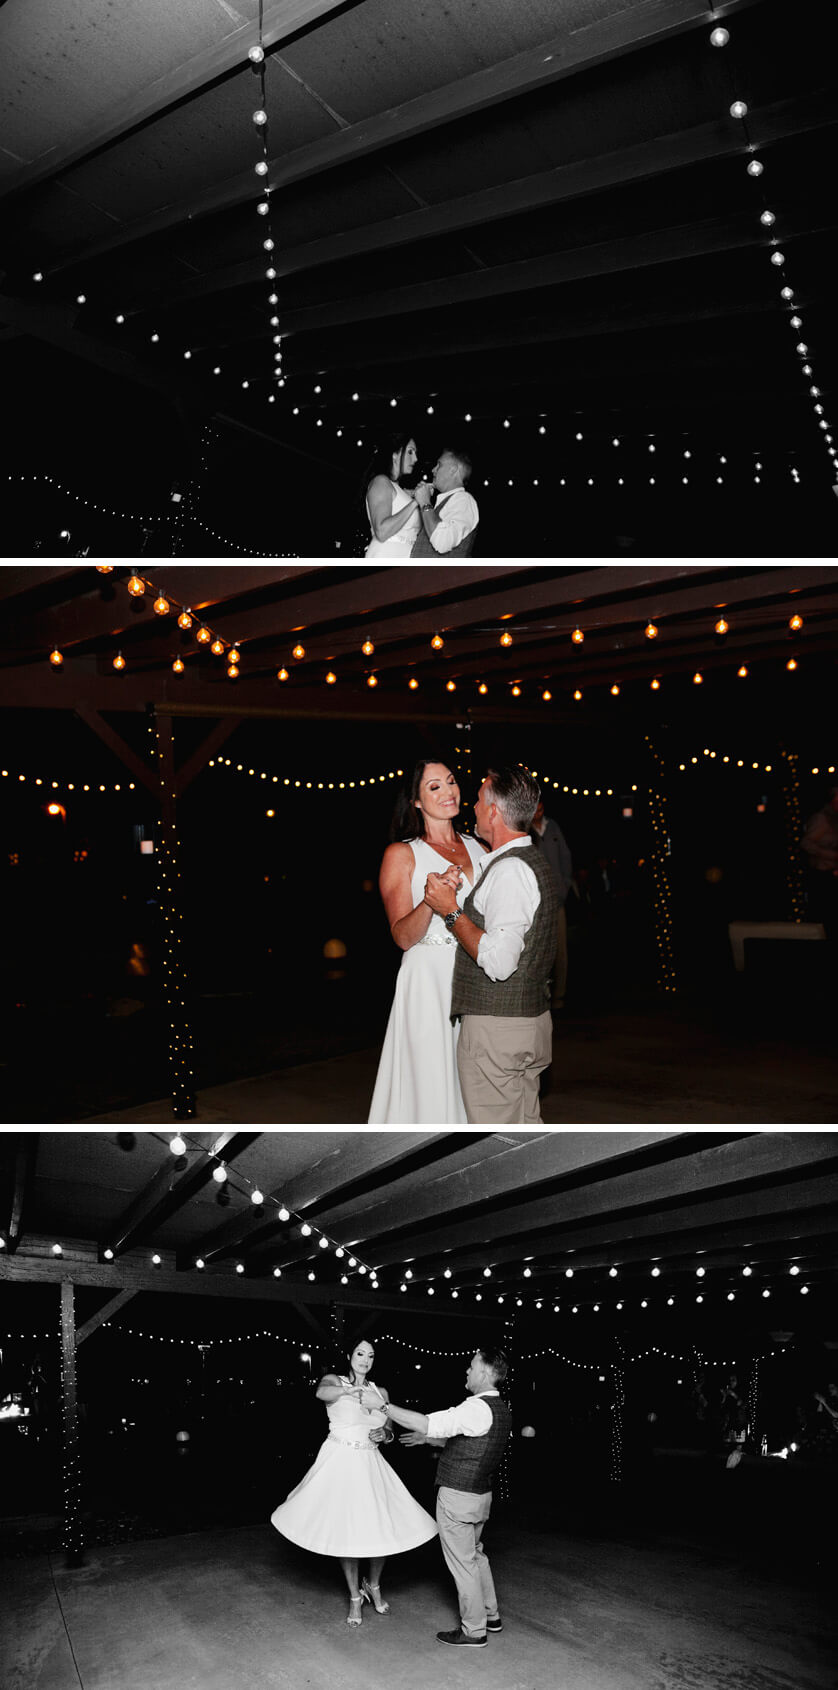 The couple dance their first dance together as husband and wife